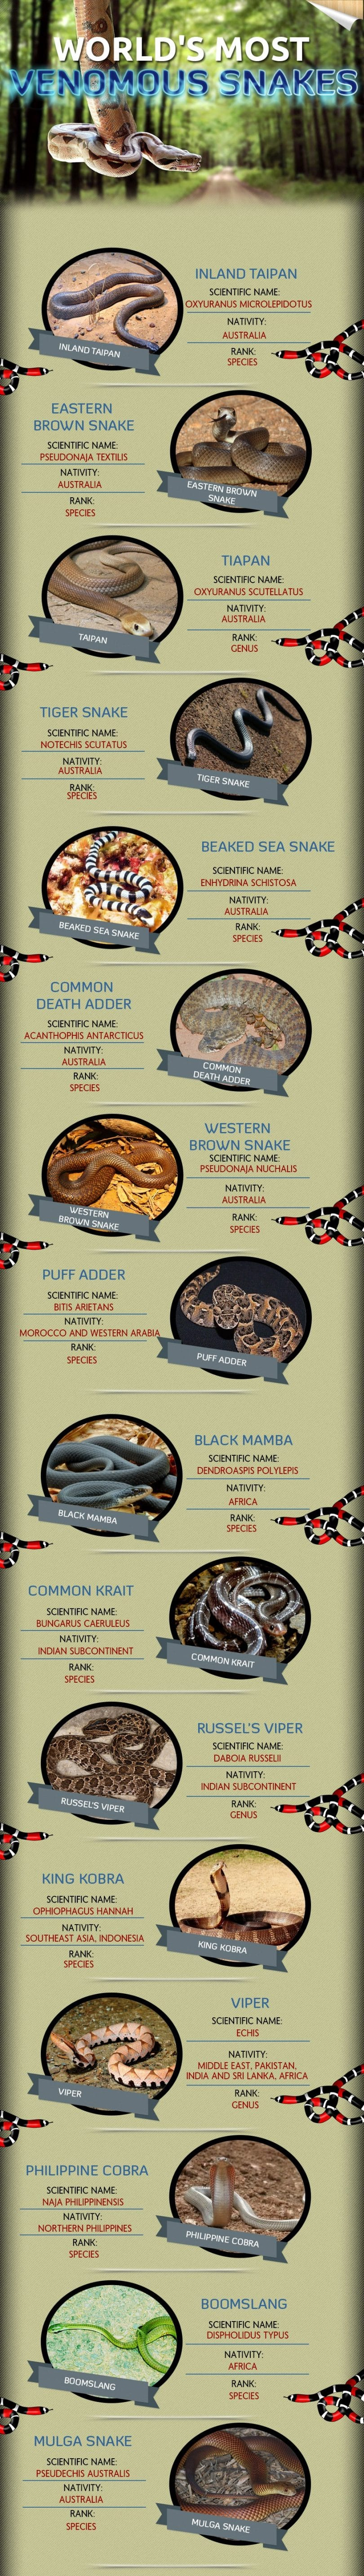 World's most venomous snakes